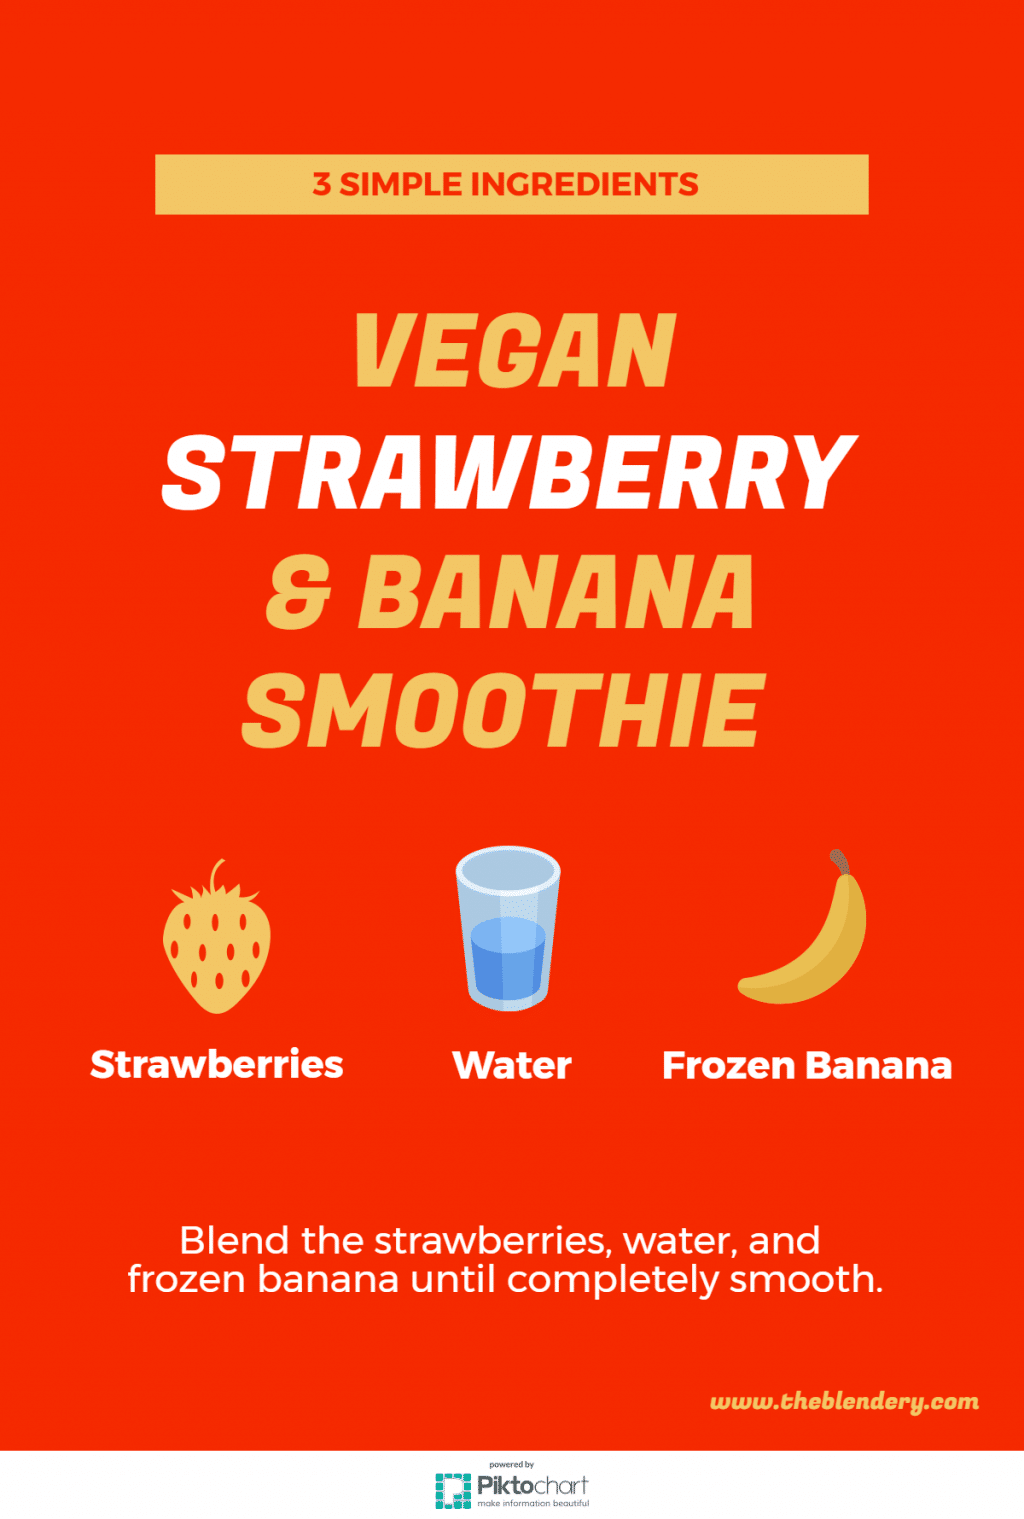 Vegan Strawberry Banana Smoothie Infographic